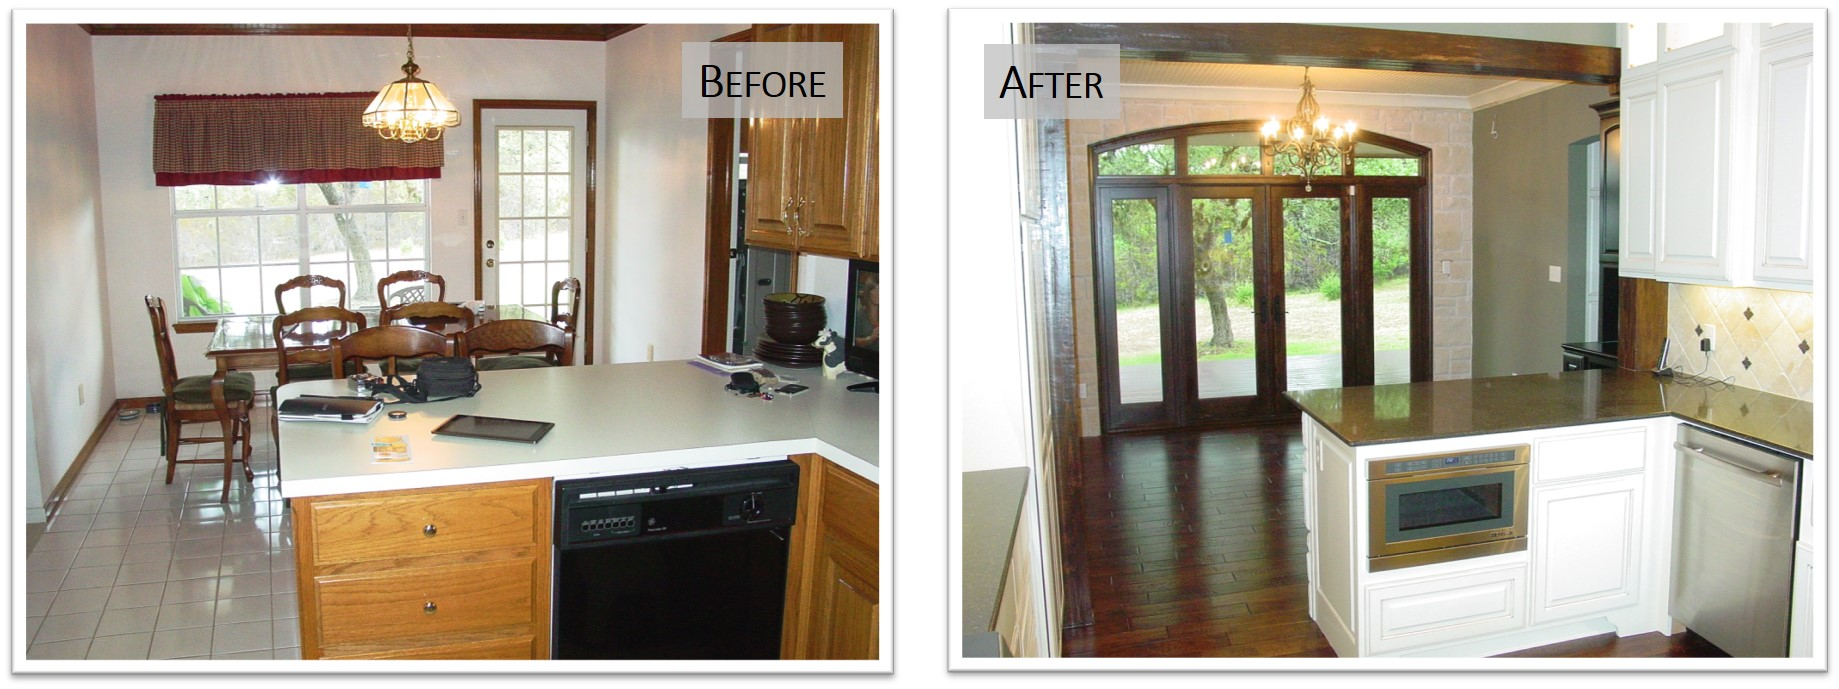 13205 CH, Kitchen1, Before and After, Bear Creek Homes.jpg